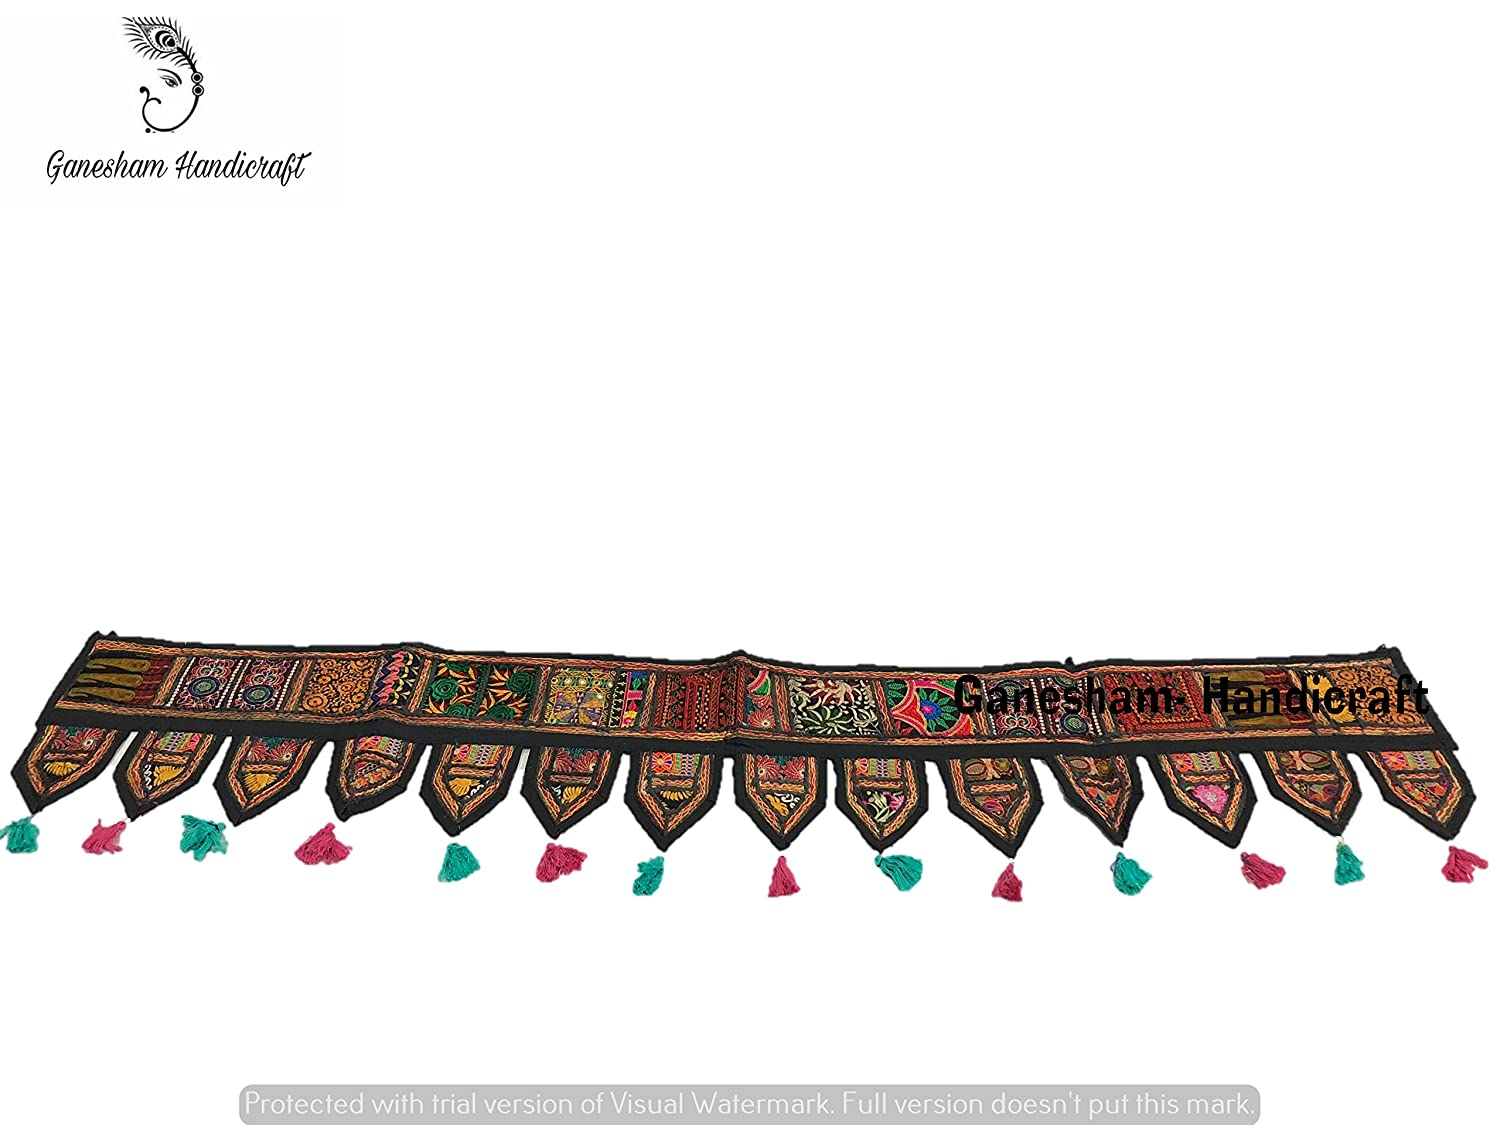 Indian Cotton Ethnic Wall Hanging Home Decor Vintage Patchwork Door Topper Valances Window Indian Valances Hand Embroidered Patchwork Toran Boho Bohemian Decor Living Room Decor ''80'' GANESHAM HANDICRAFT